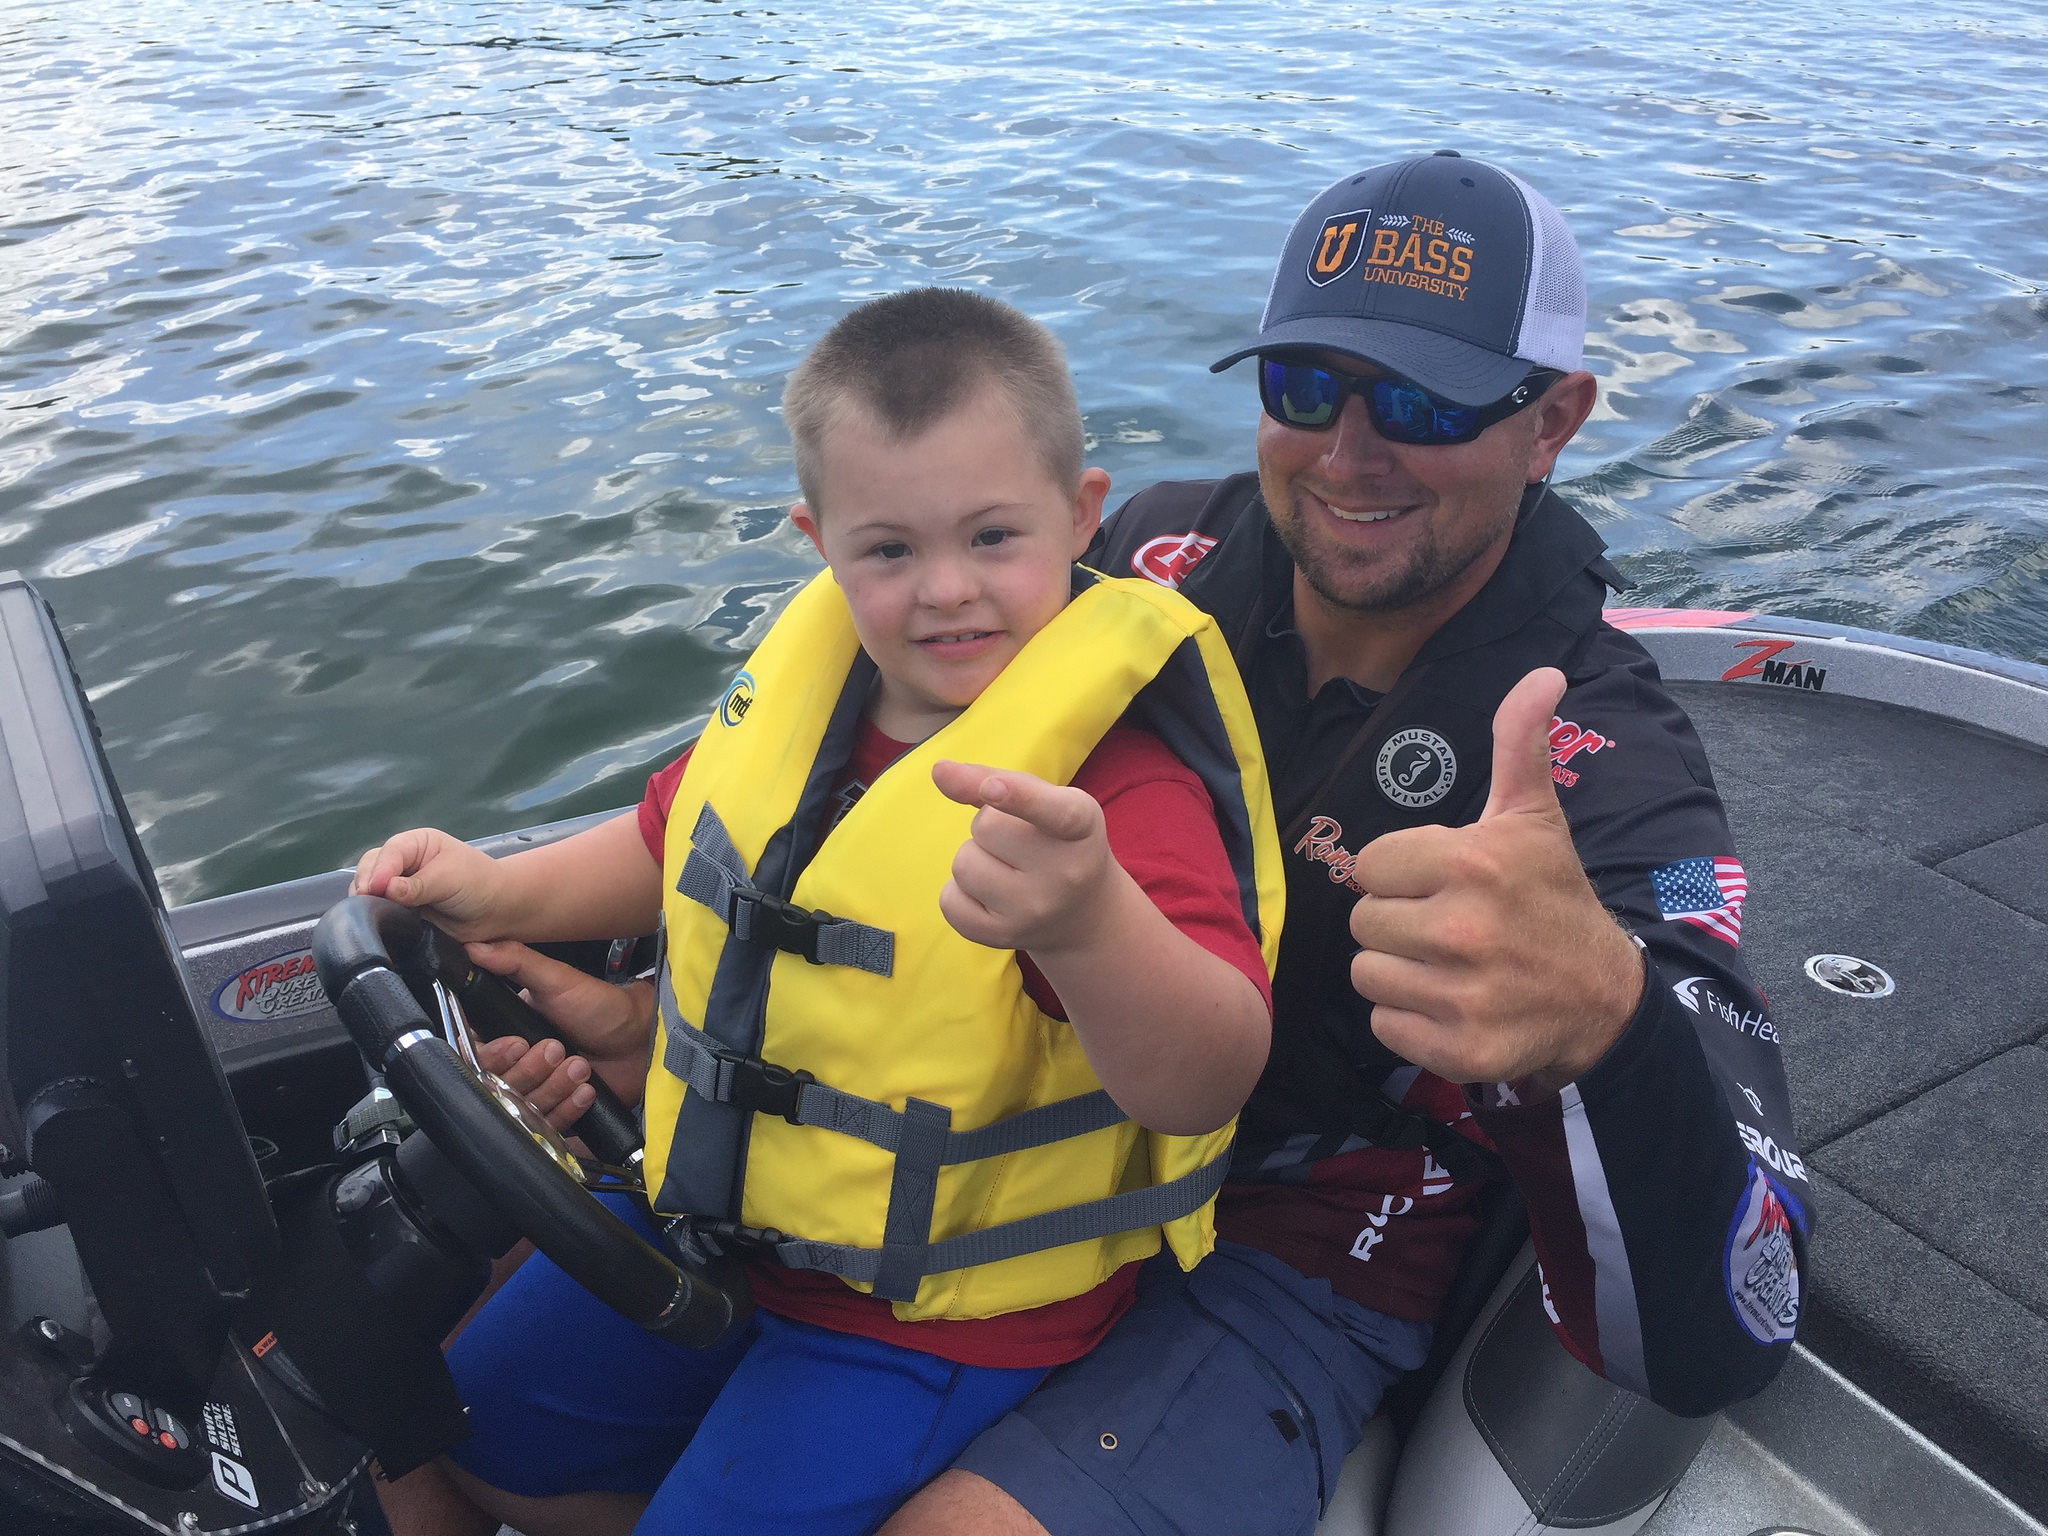 C.A.S.T. for Kids – Lake Lanier